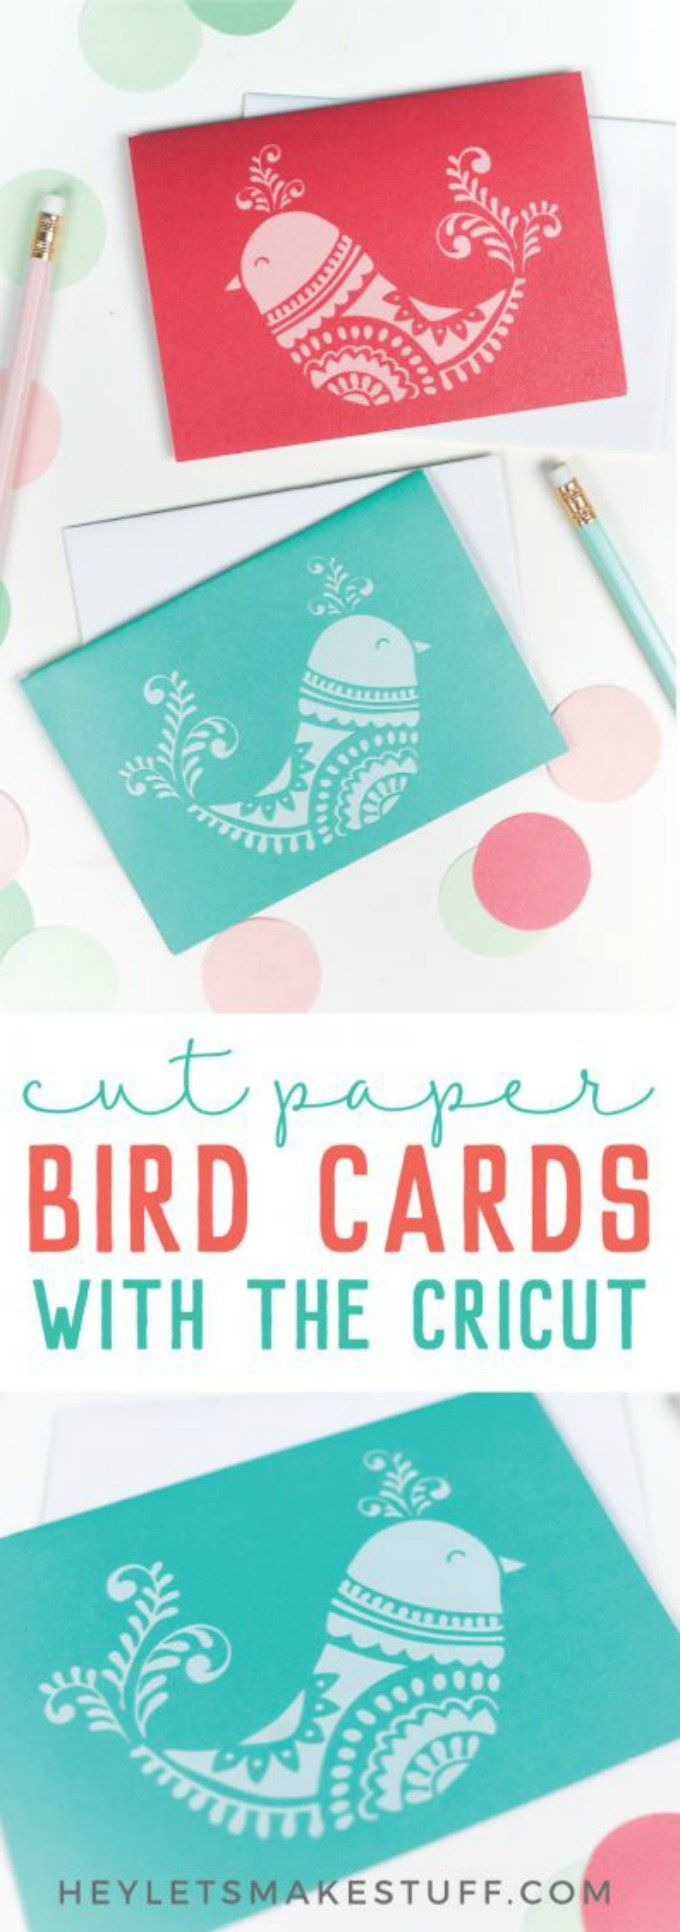 Hey Let's Make Stuff Christmas bird cards